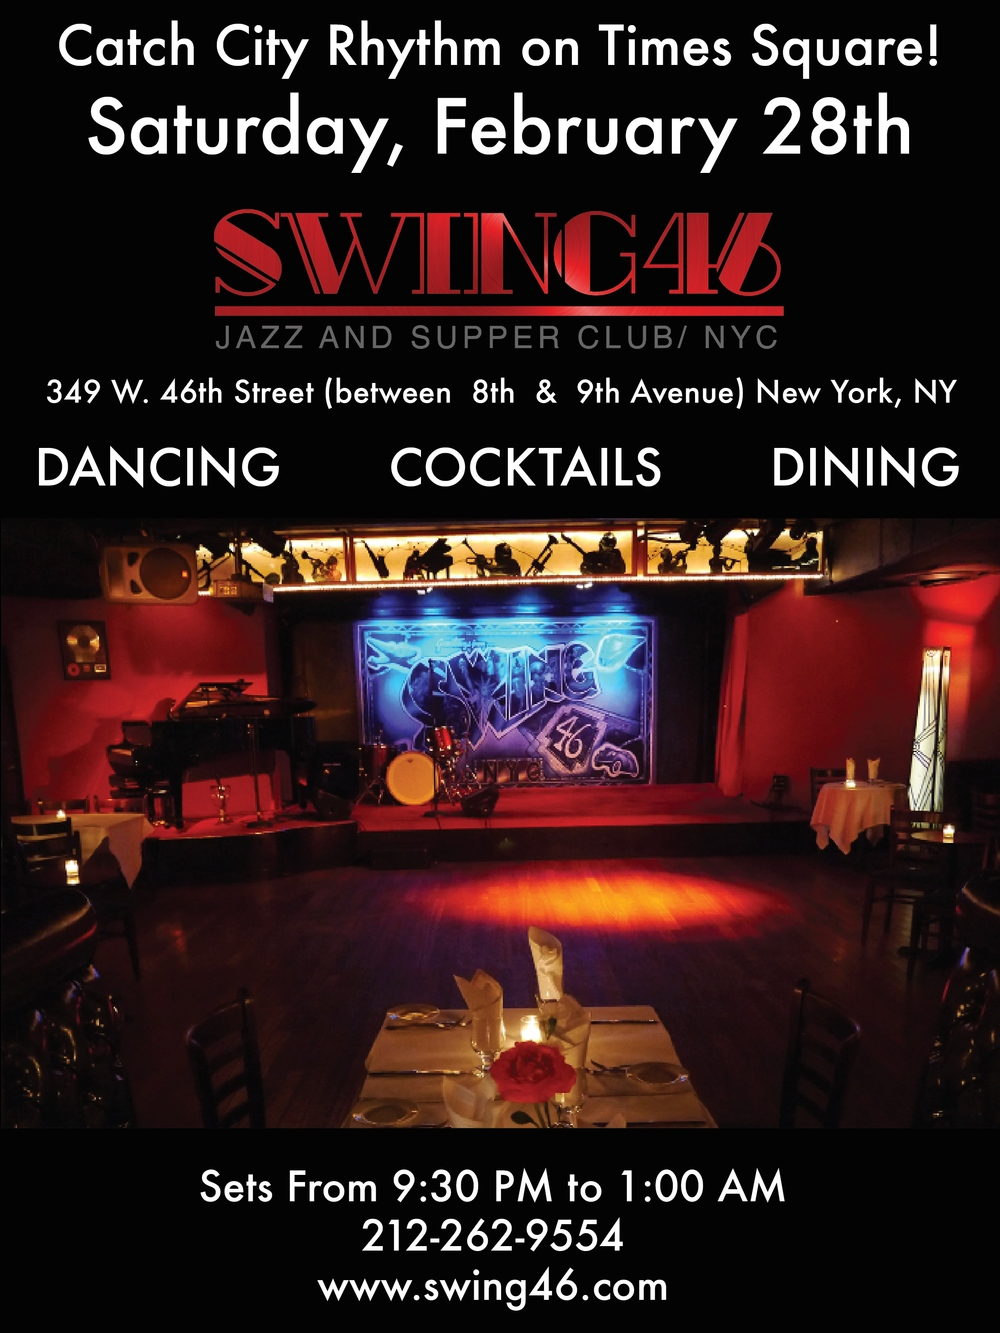 Swing 46 In New York City City Rhythm